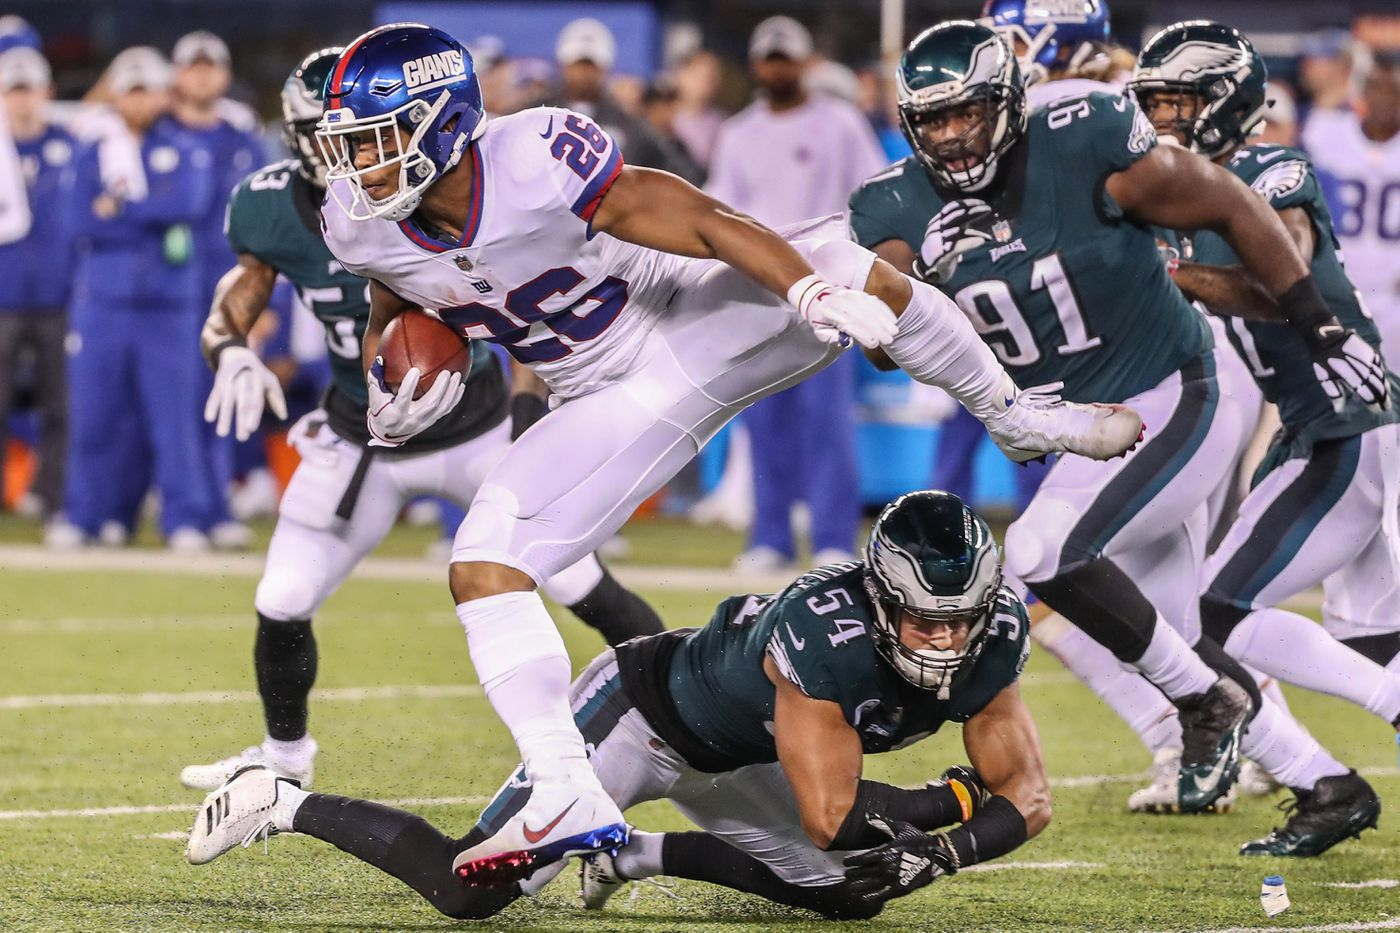 Eagles fans, get used to Saquon Barkley giving Birds defense fits | Jeff McLane